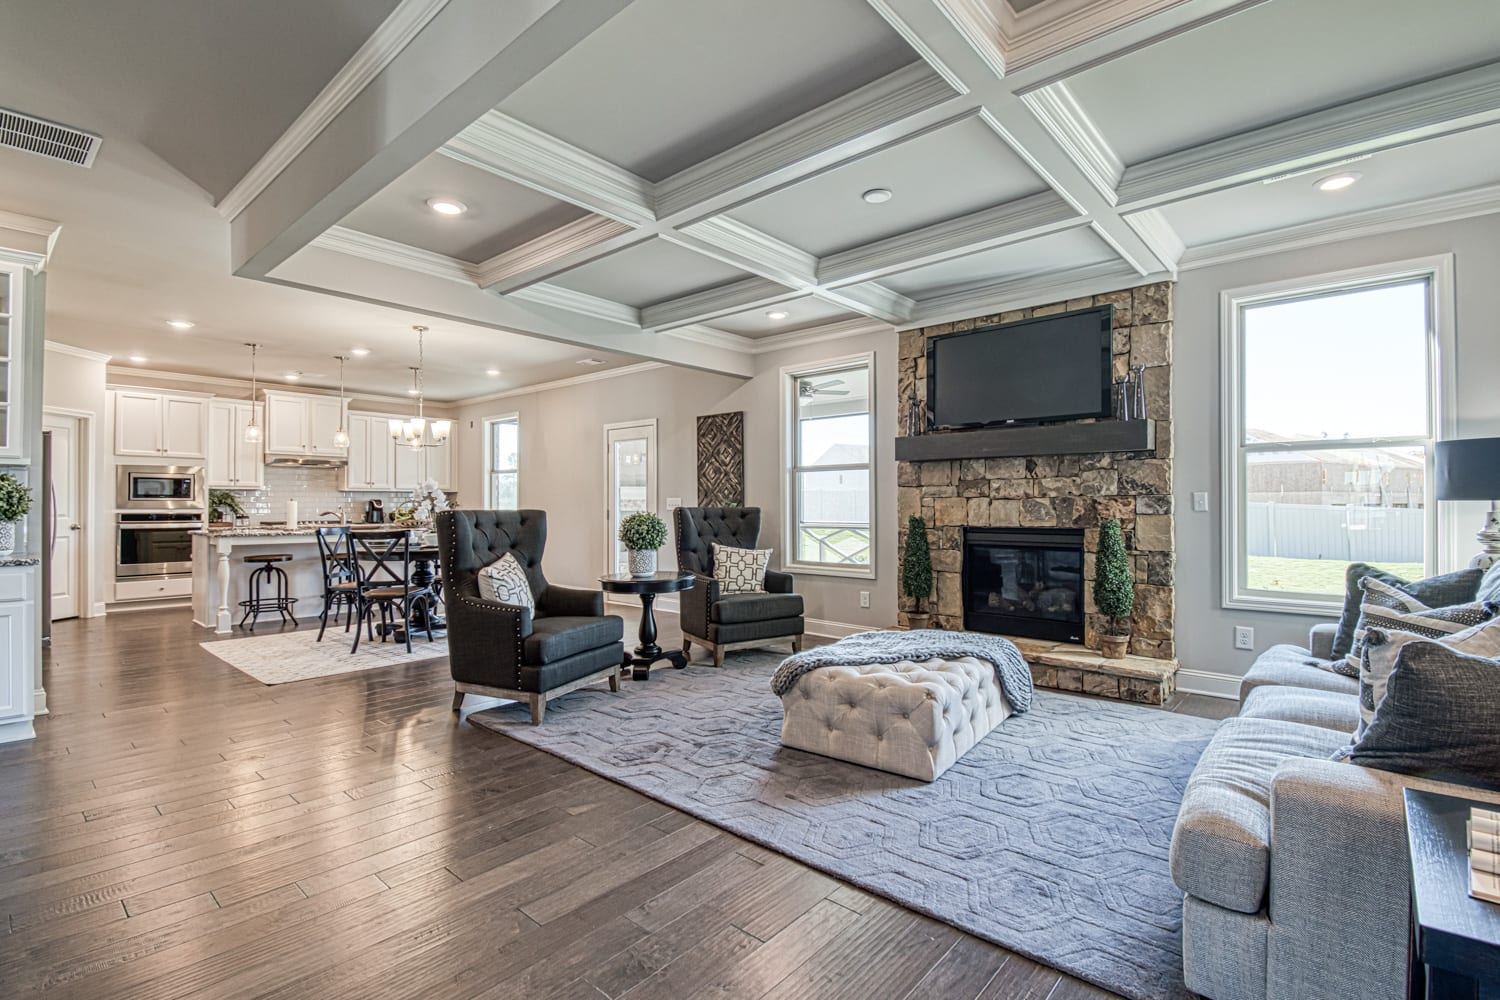 6th Home Builder In Atlanta Chafin Communities